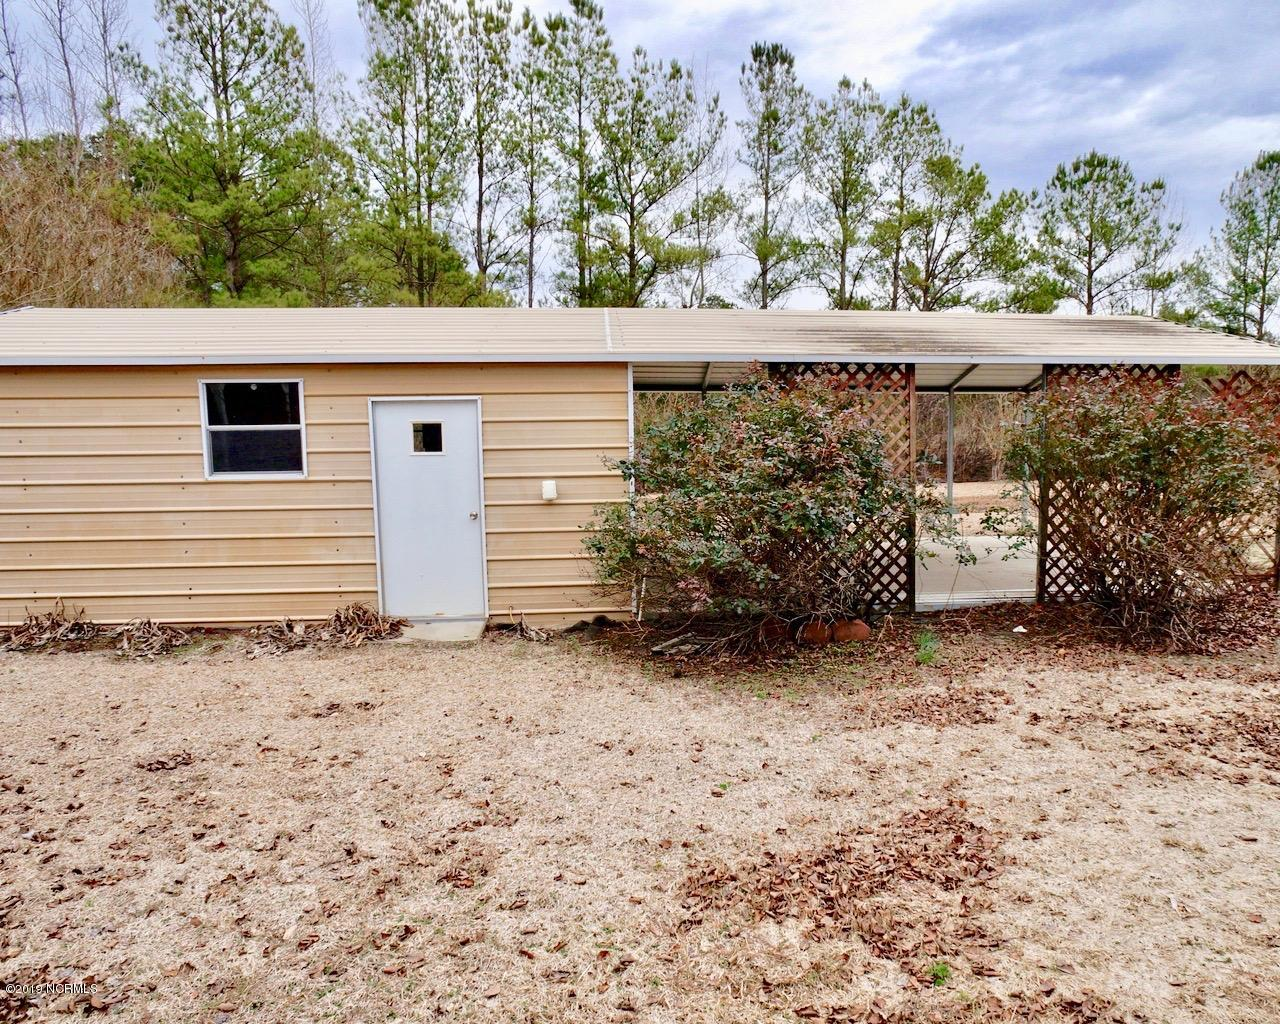 160 Bass Street, Vanceboro, North Carolina, 3 Bedrooms Bedrooms, 6 Rooms Rooms,2 BathroomsBathrooms,Manufactured home,For sale,Bass,100144246